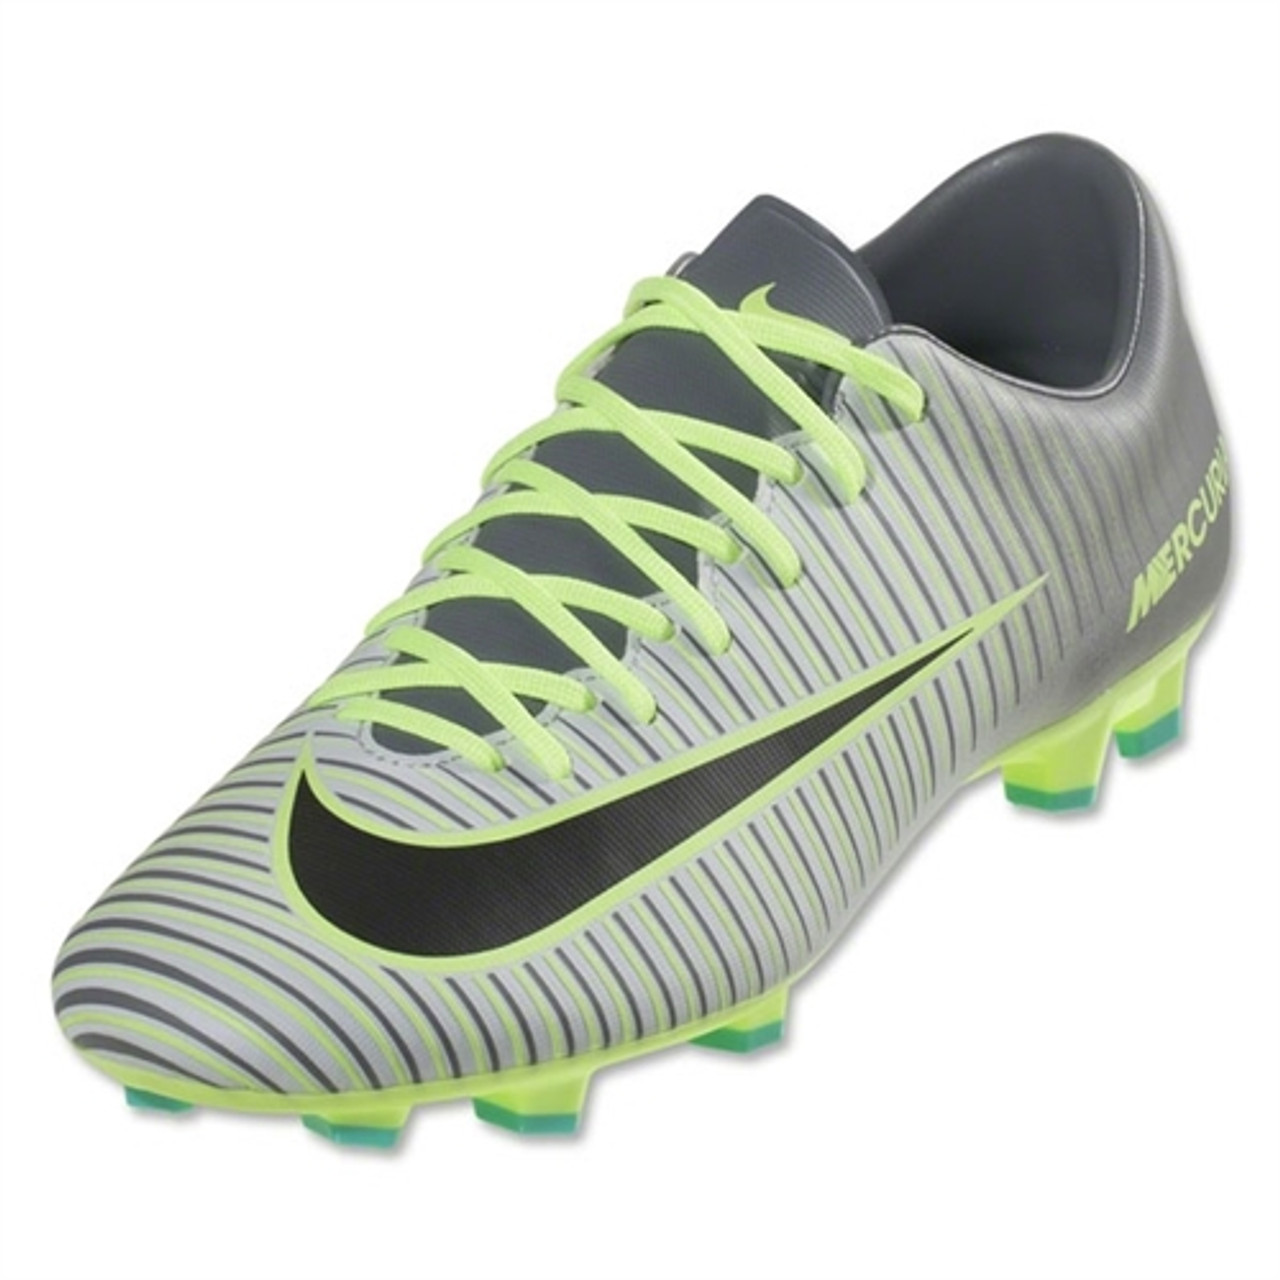 42f0500f0eac Nike Mercurial Victory VI FG - Pure Platinum Black Ghost Green (123016) -  ohp soccer